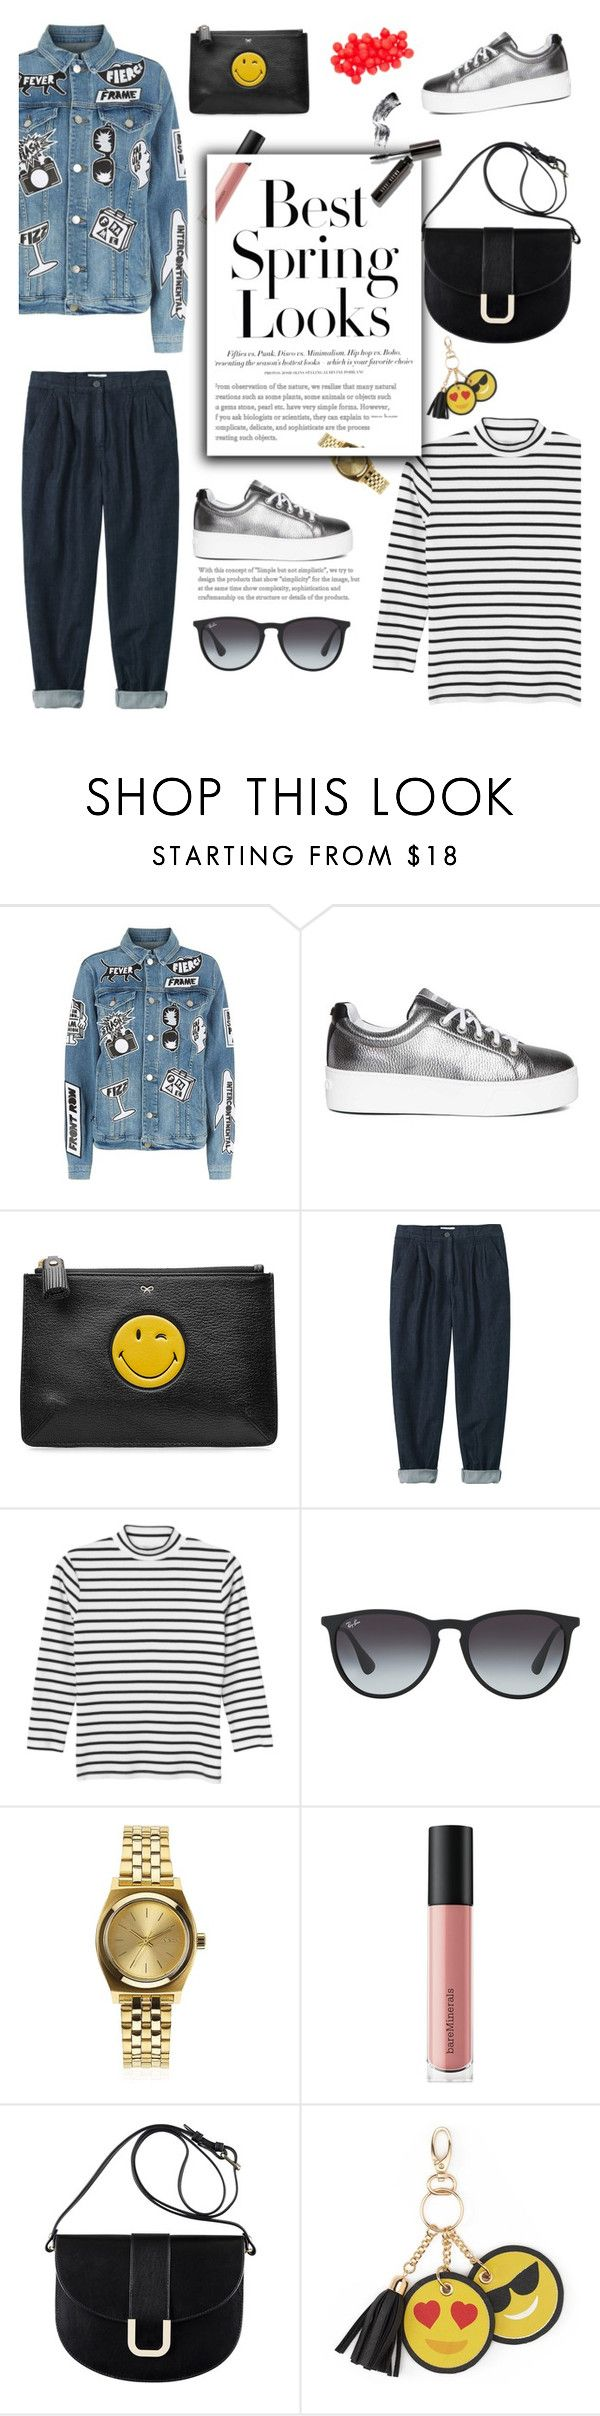 """A Look Ahead Spring 2017..."" by glamorous09 ❤ liked on Polyvore featuring Frame, Kenzo, Anya Hindmarch, H&M, Monki, Ray-Ban, Nixon, Bare Escentuals, A.P.C. and Under One Sky"